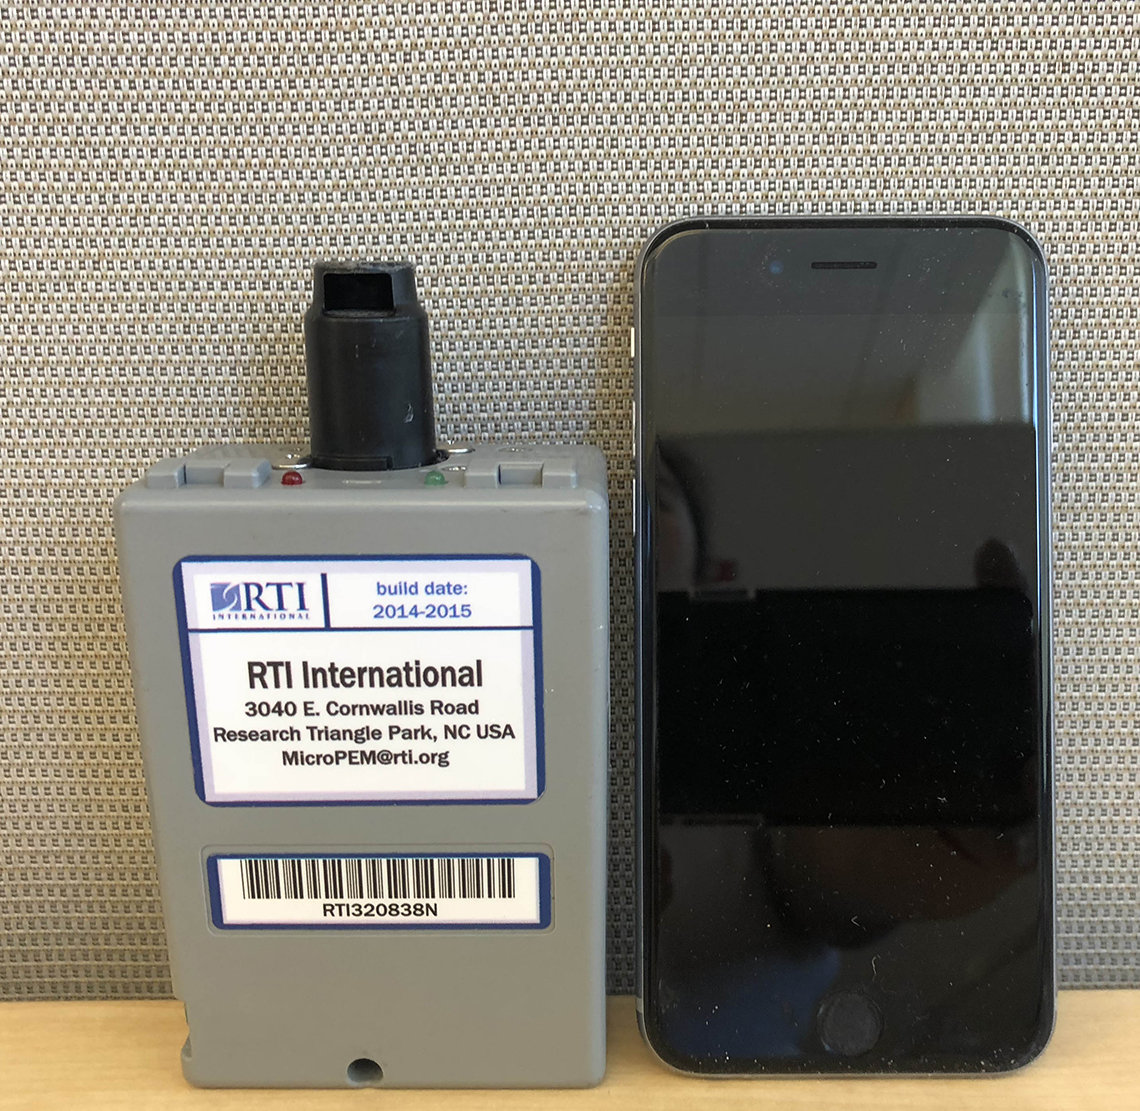 The device sits to the left of a cell phone